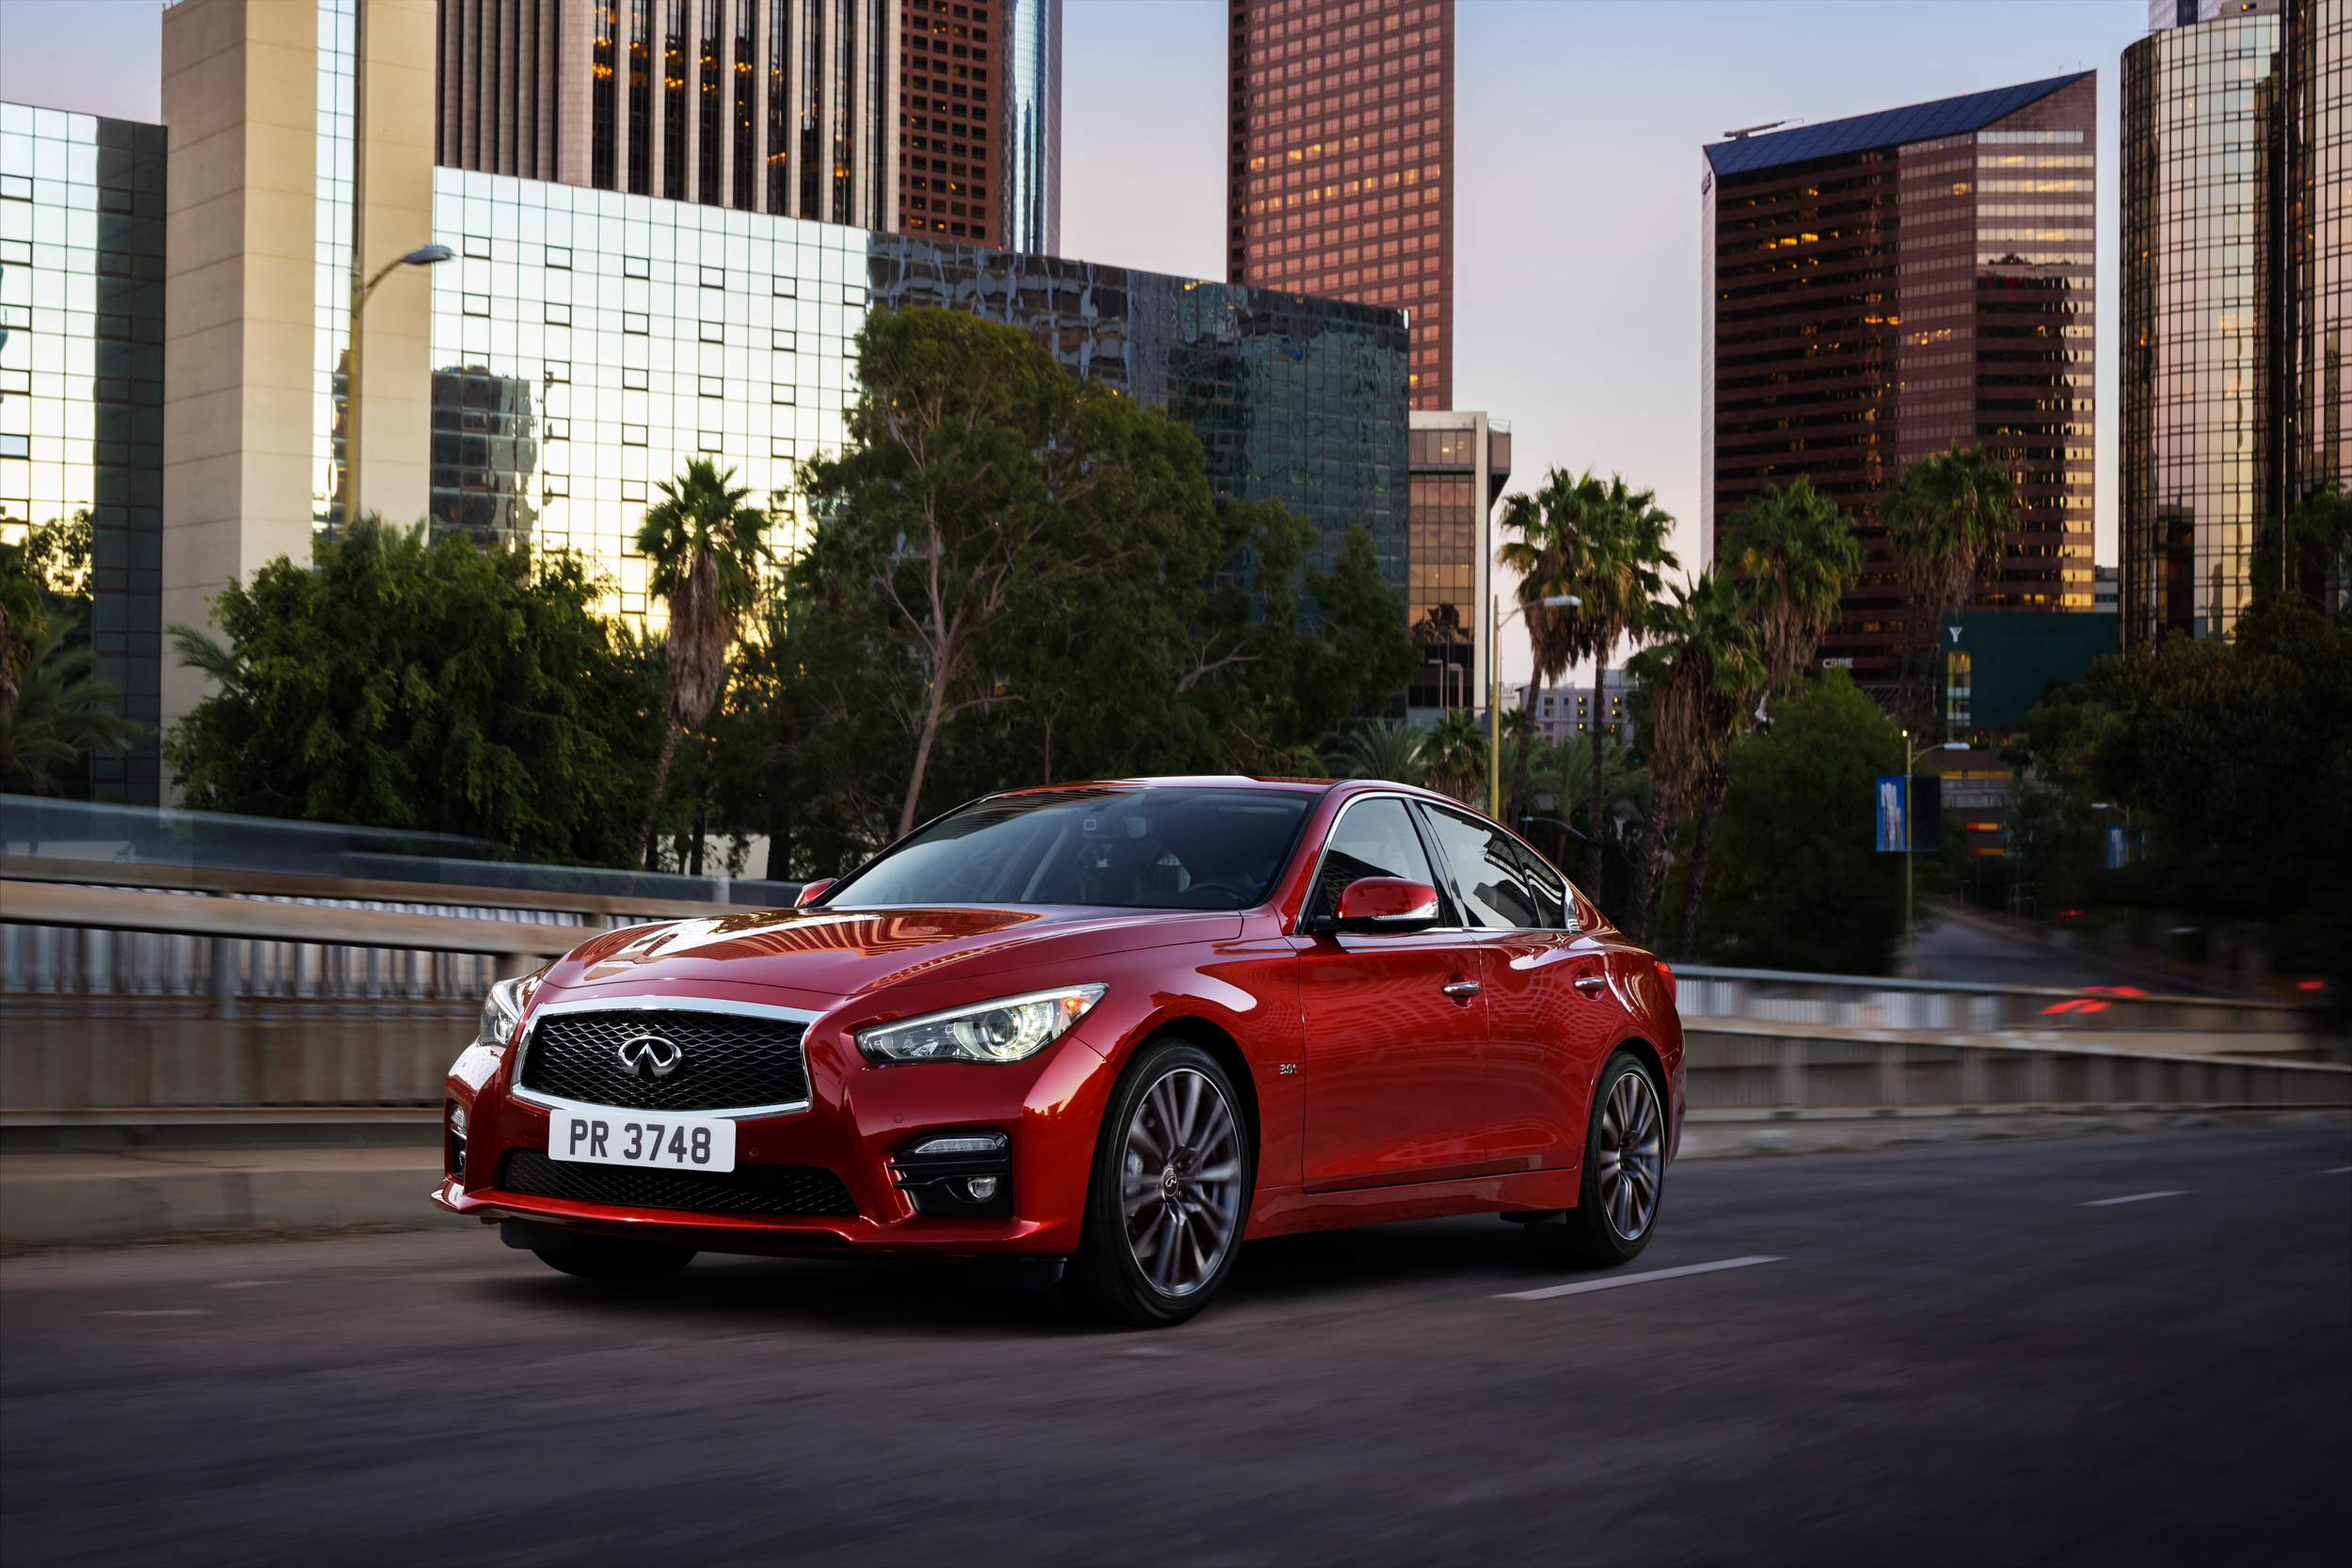 reports price infiniti drives bhp test forum front three infinity shadow team first my the quarter initial one ownership on